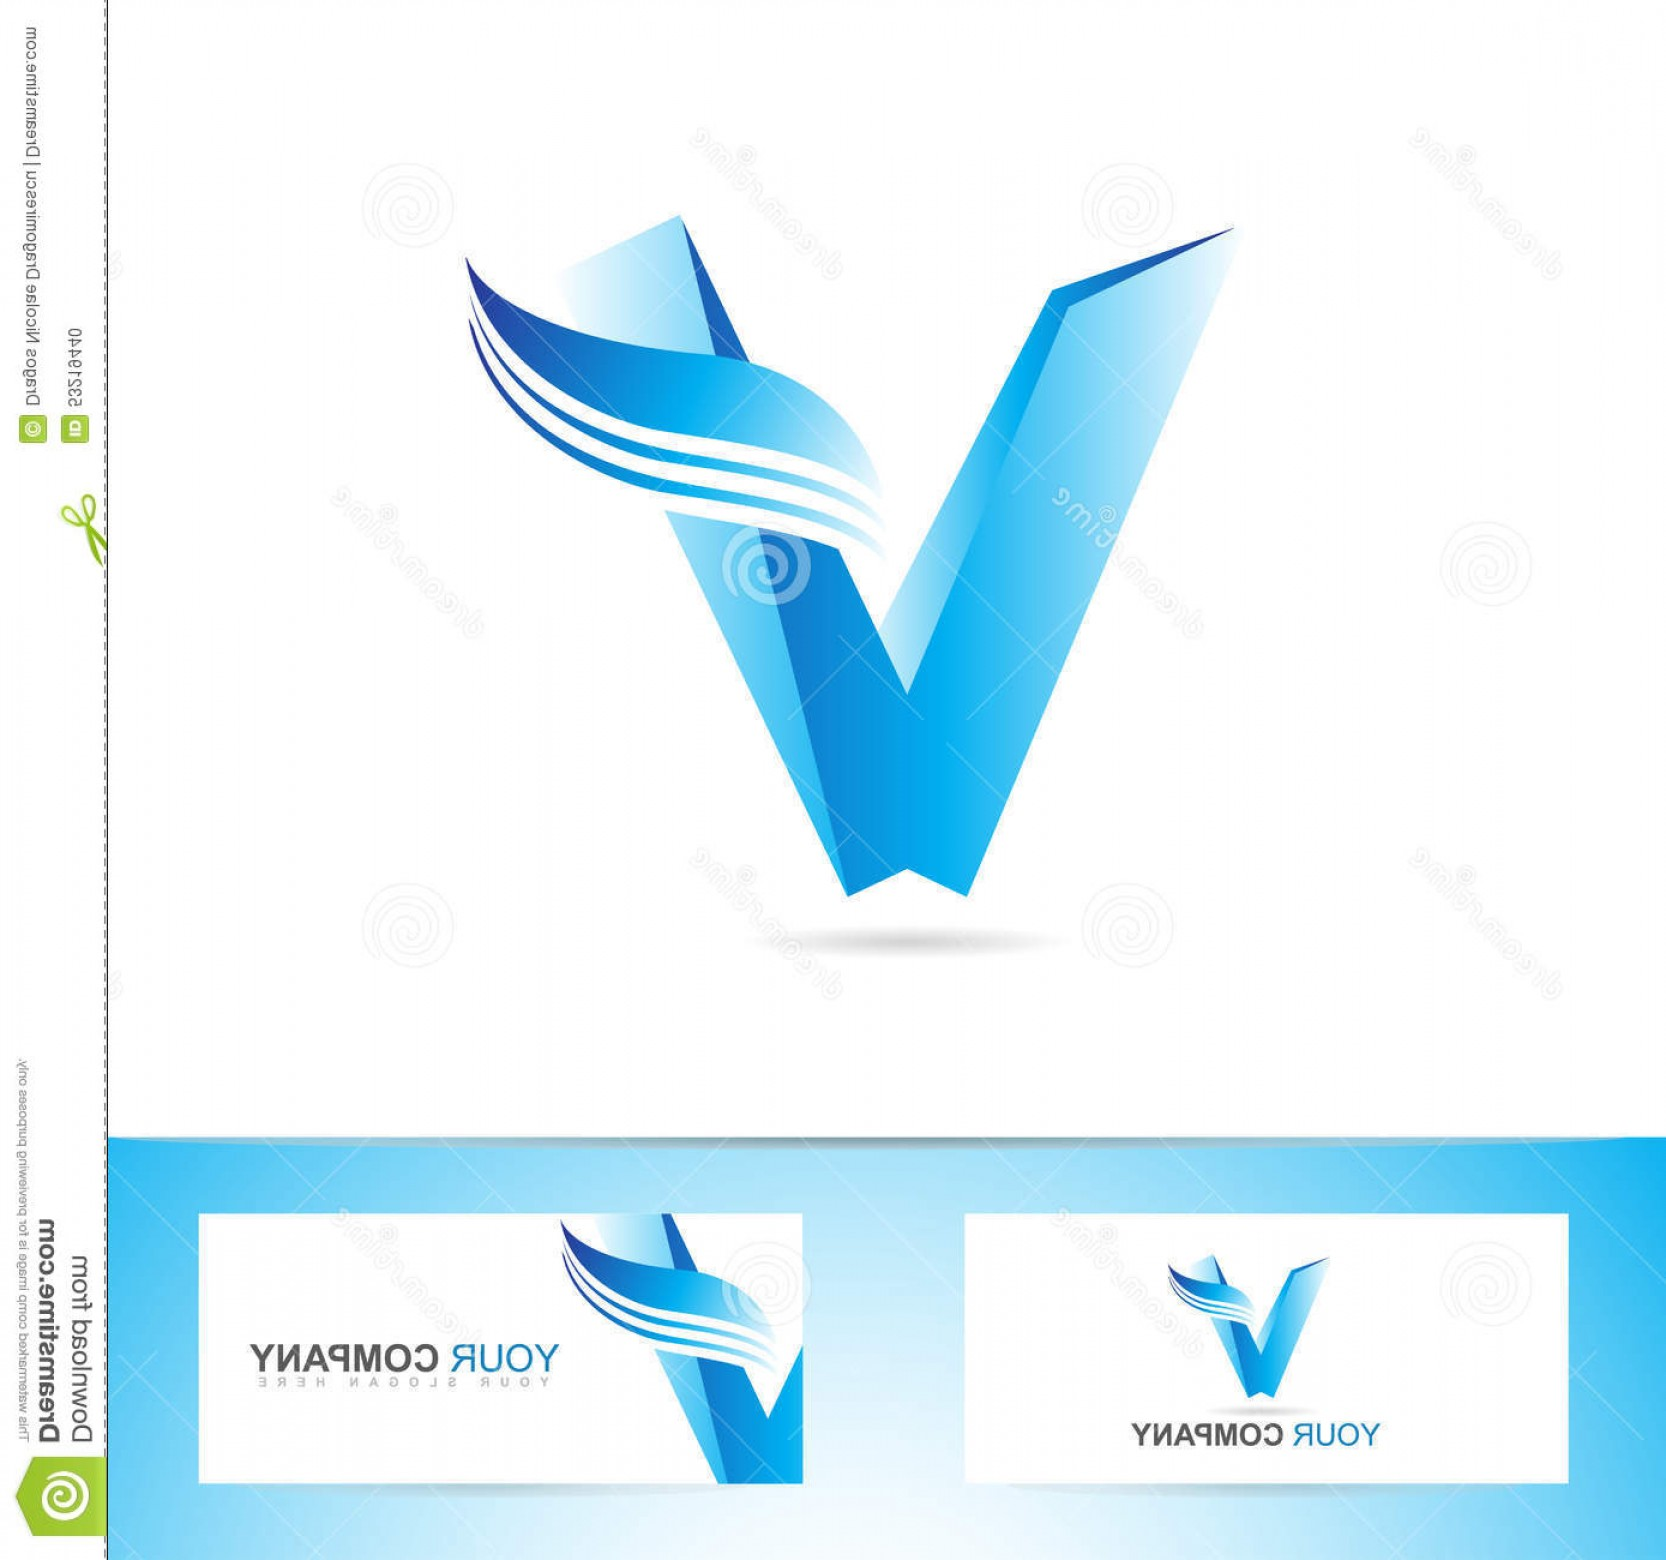 V Logo Vector: Stock Illustration Letter V Logo Icon Symbol Vector Template Blue D Alphabet Image